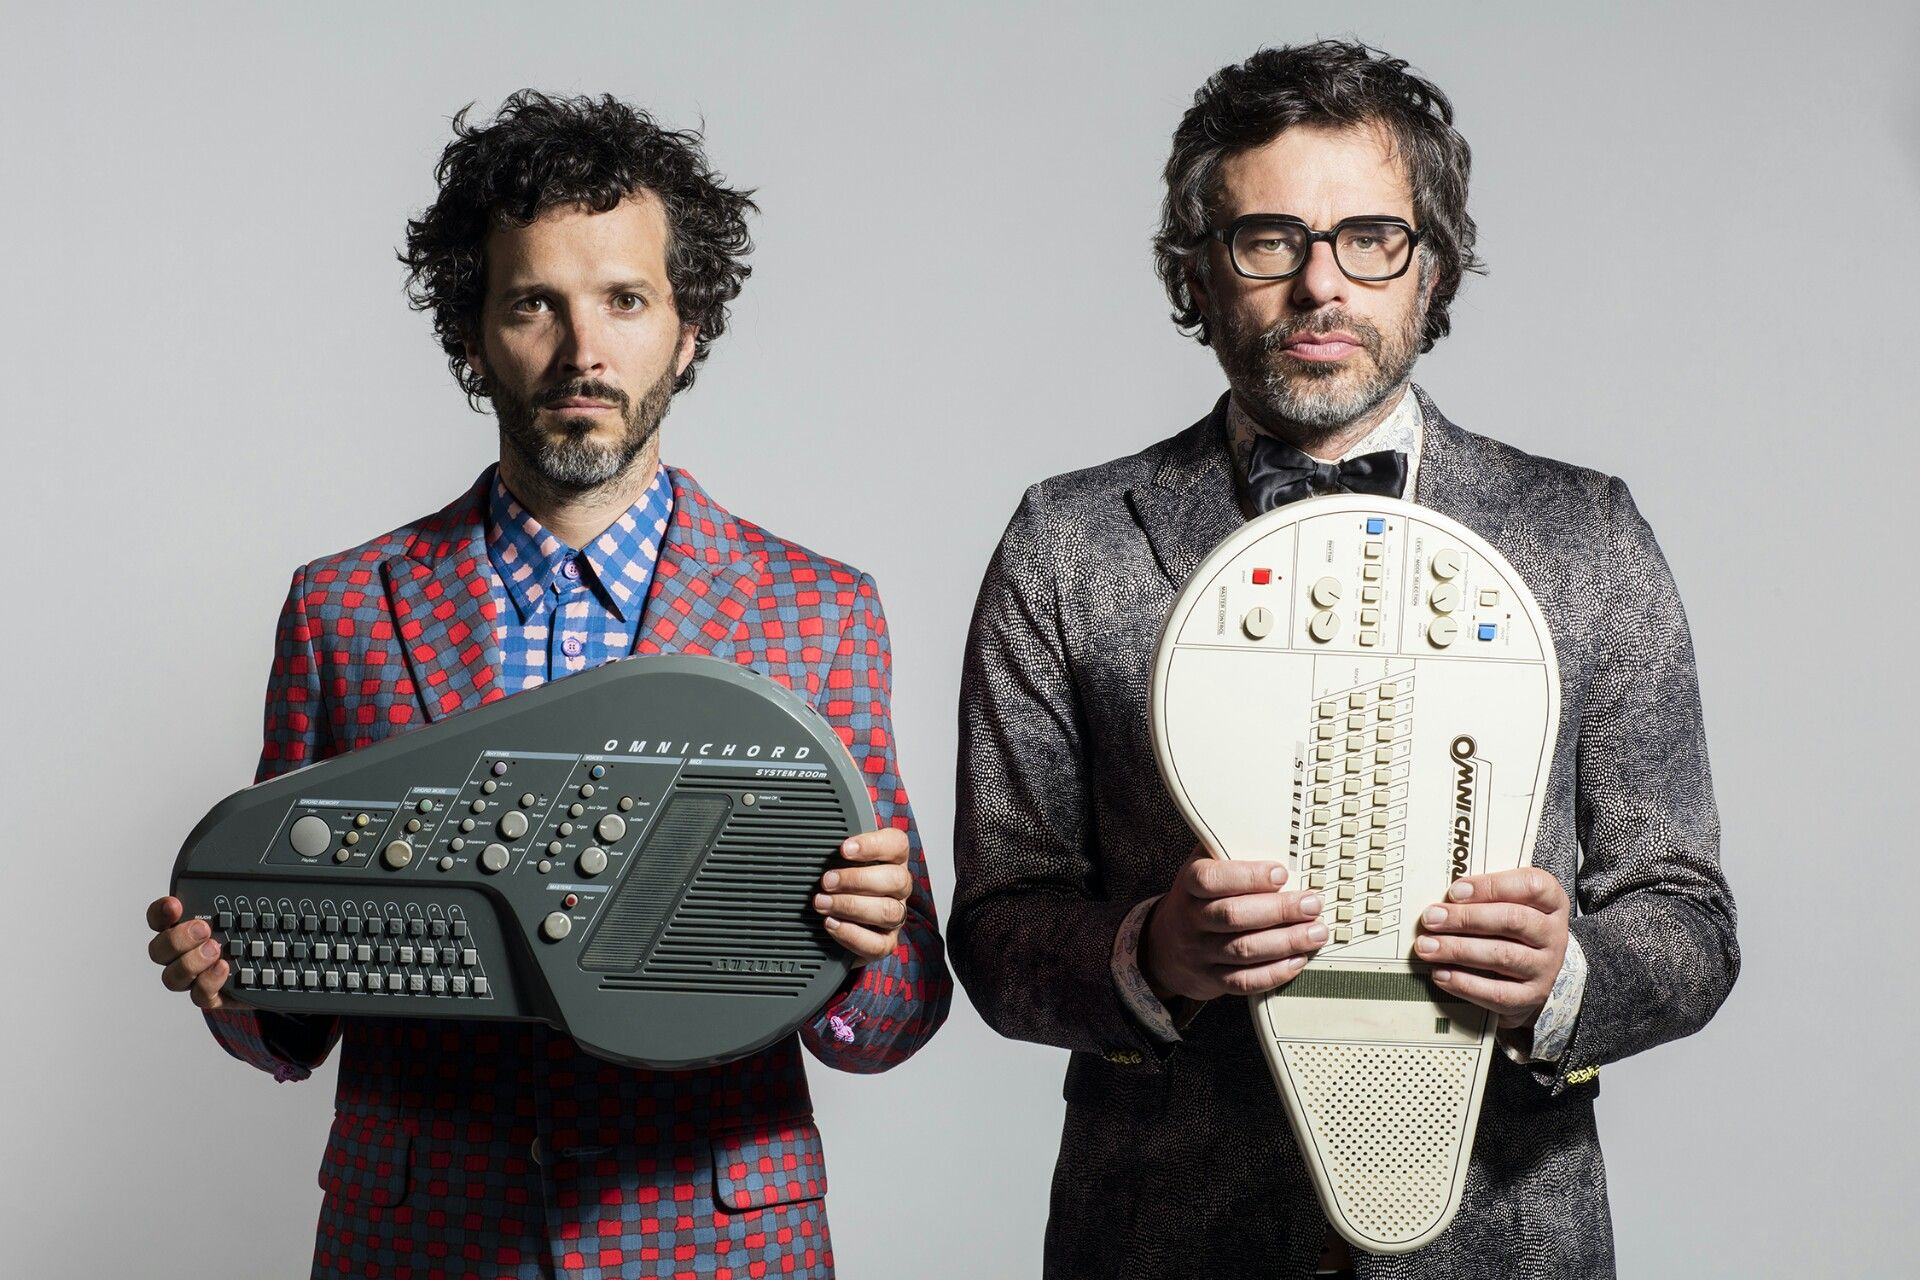 Hd Wallpaper Flight Of The Conchords Flight Of The Conchords